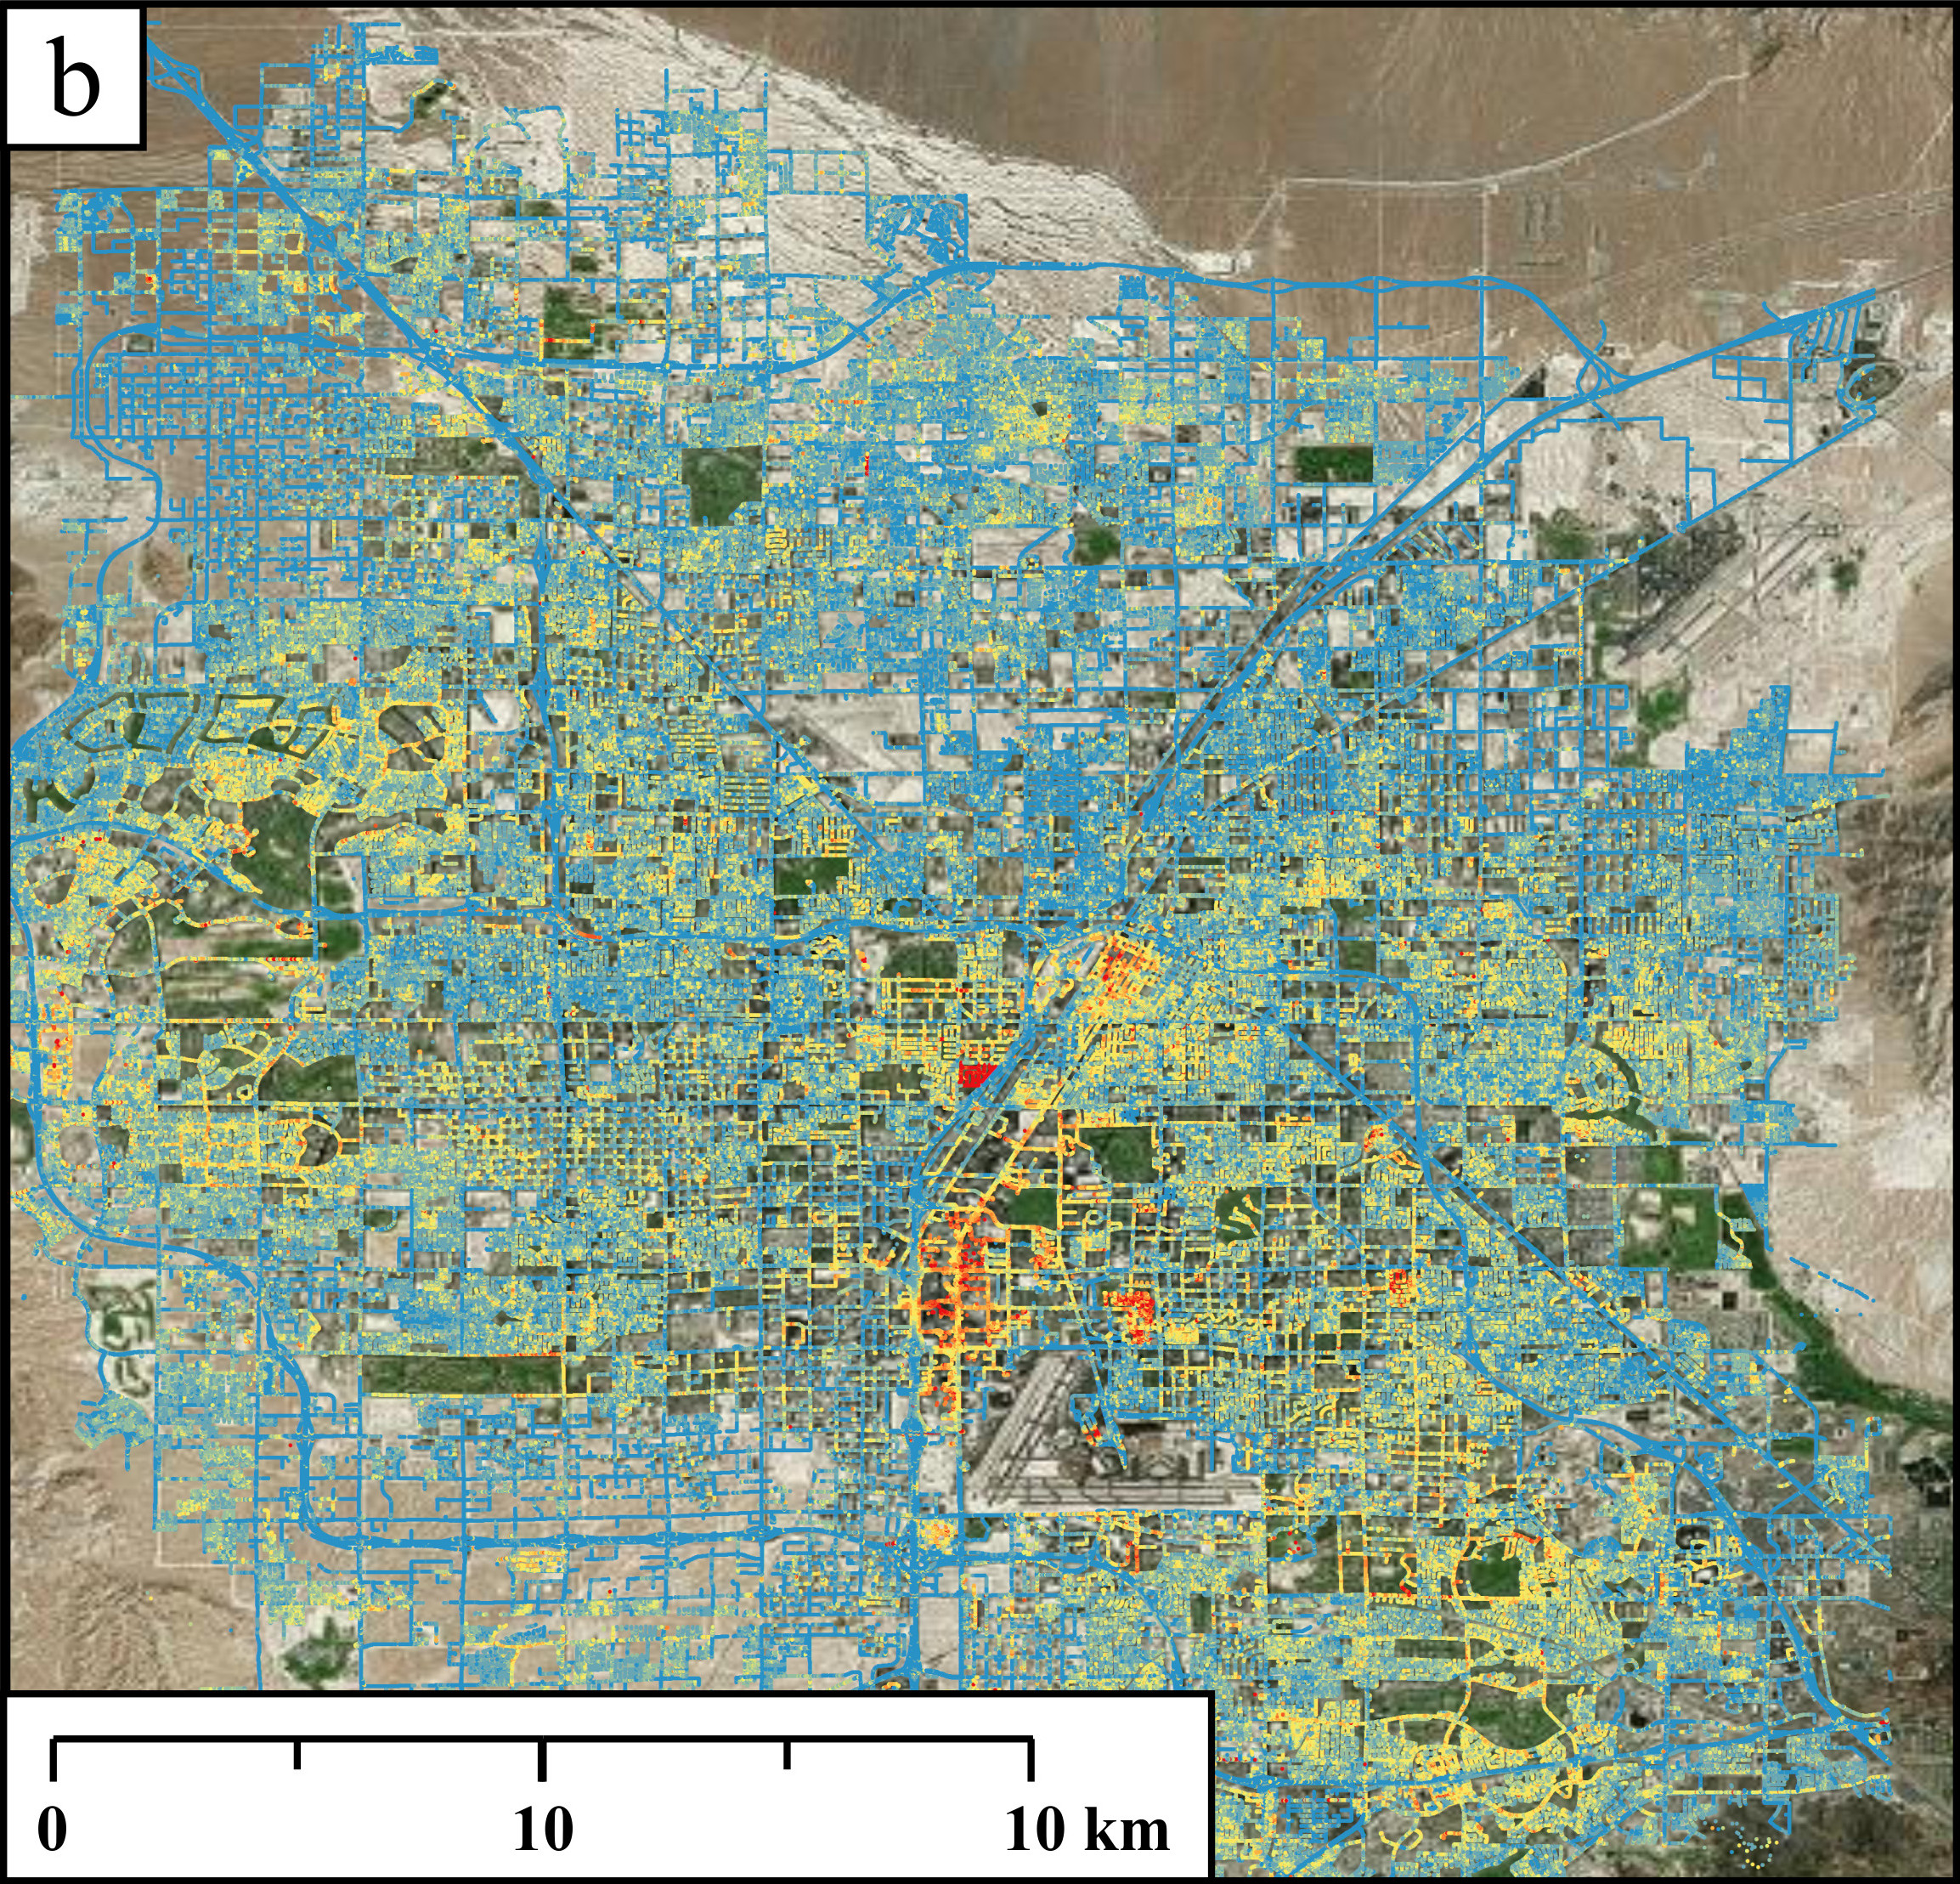 Assessing Local Climate Zones in Arid Cities: The Case of Phoenix, Arizona and Las Vegas, Nevada